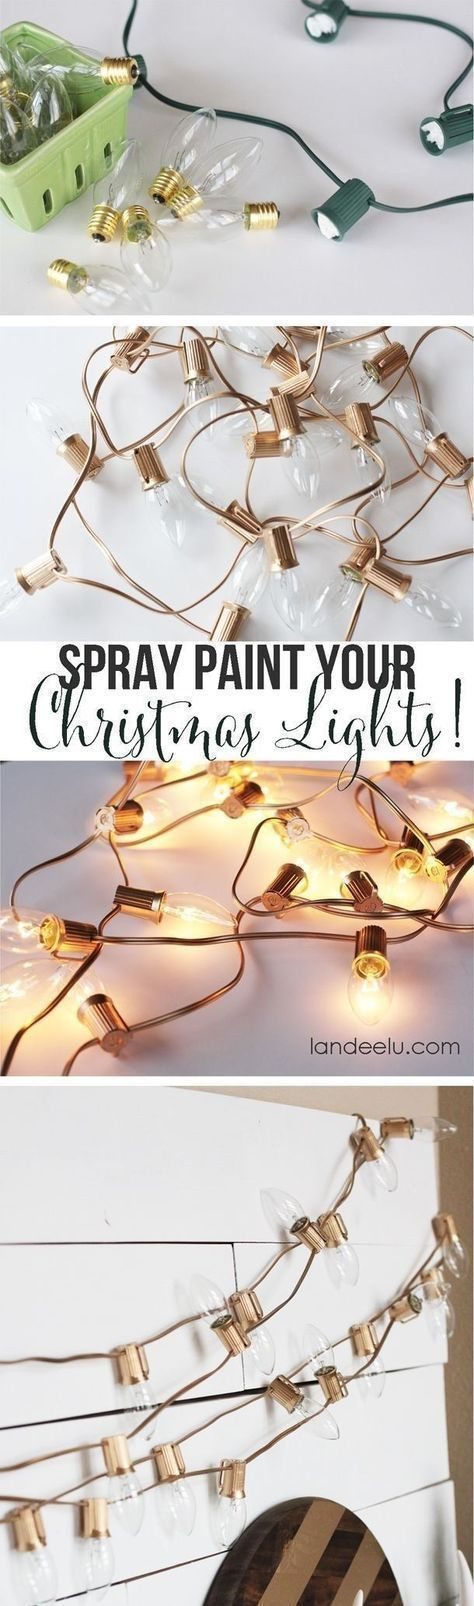 String Light DIY ideas for Cool Home Decor - Spray Painted Christmas Lights are Fun for Teens Room, Dorm, Apartment or Home #christmaslightdecorations